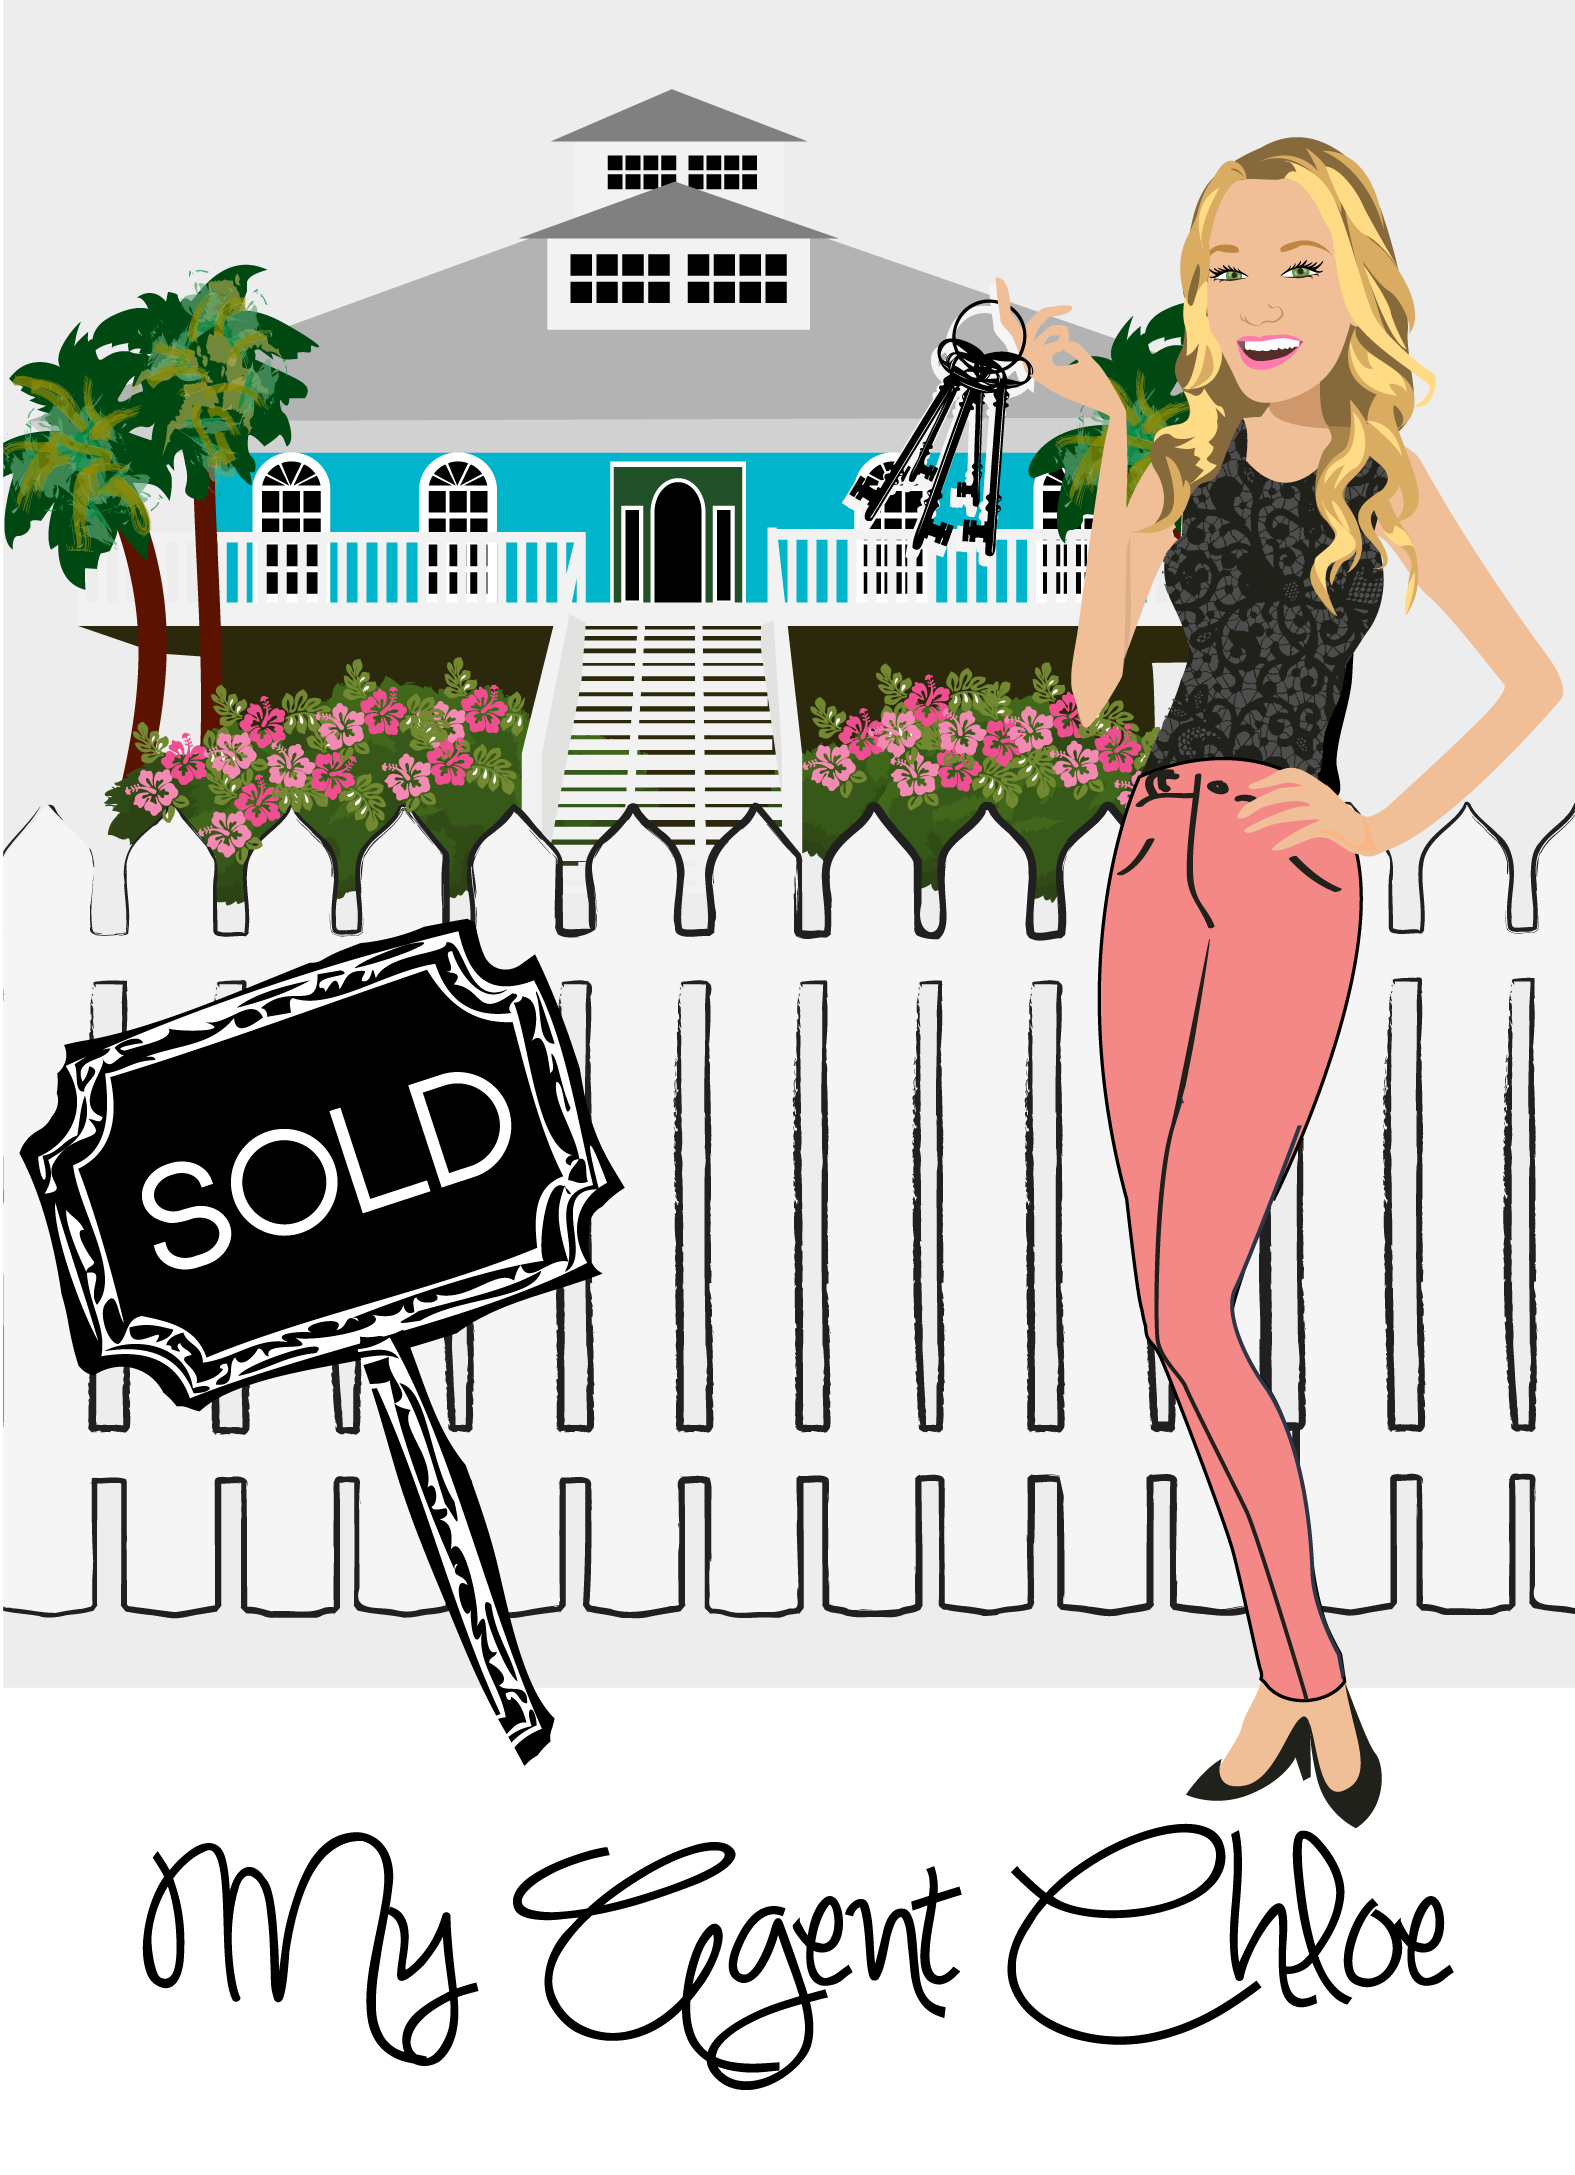 Final Design of Custom Portrait illustration - Here is the final design that Chloe approved. It is a beautiful vector illustration of her in her profession as a Realtor. This type of design works wonderfully as a logo for Real Estate Agents.